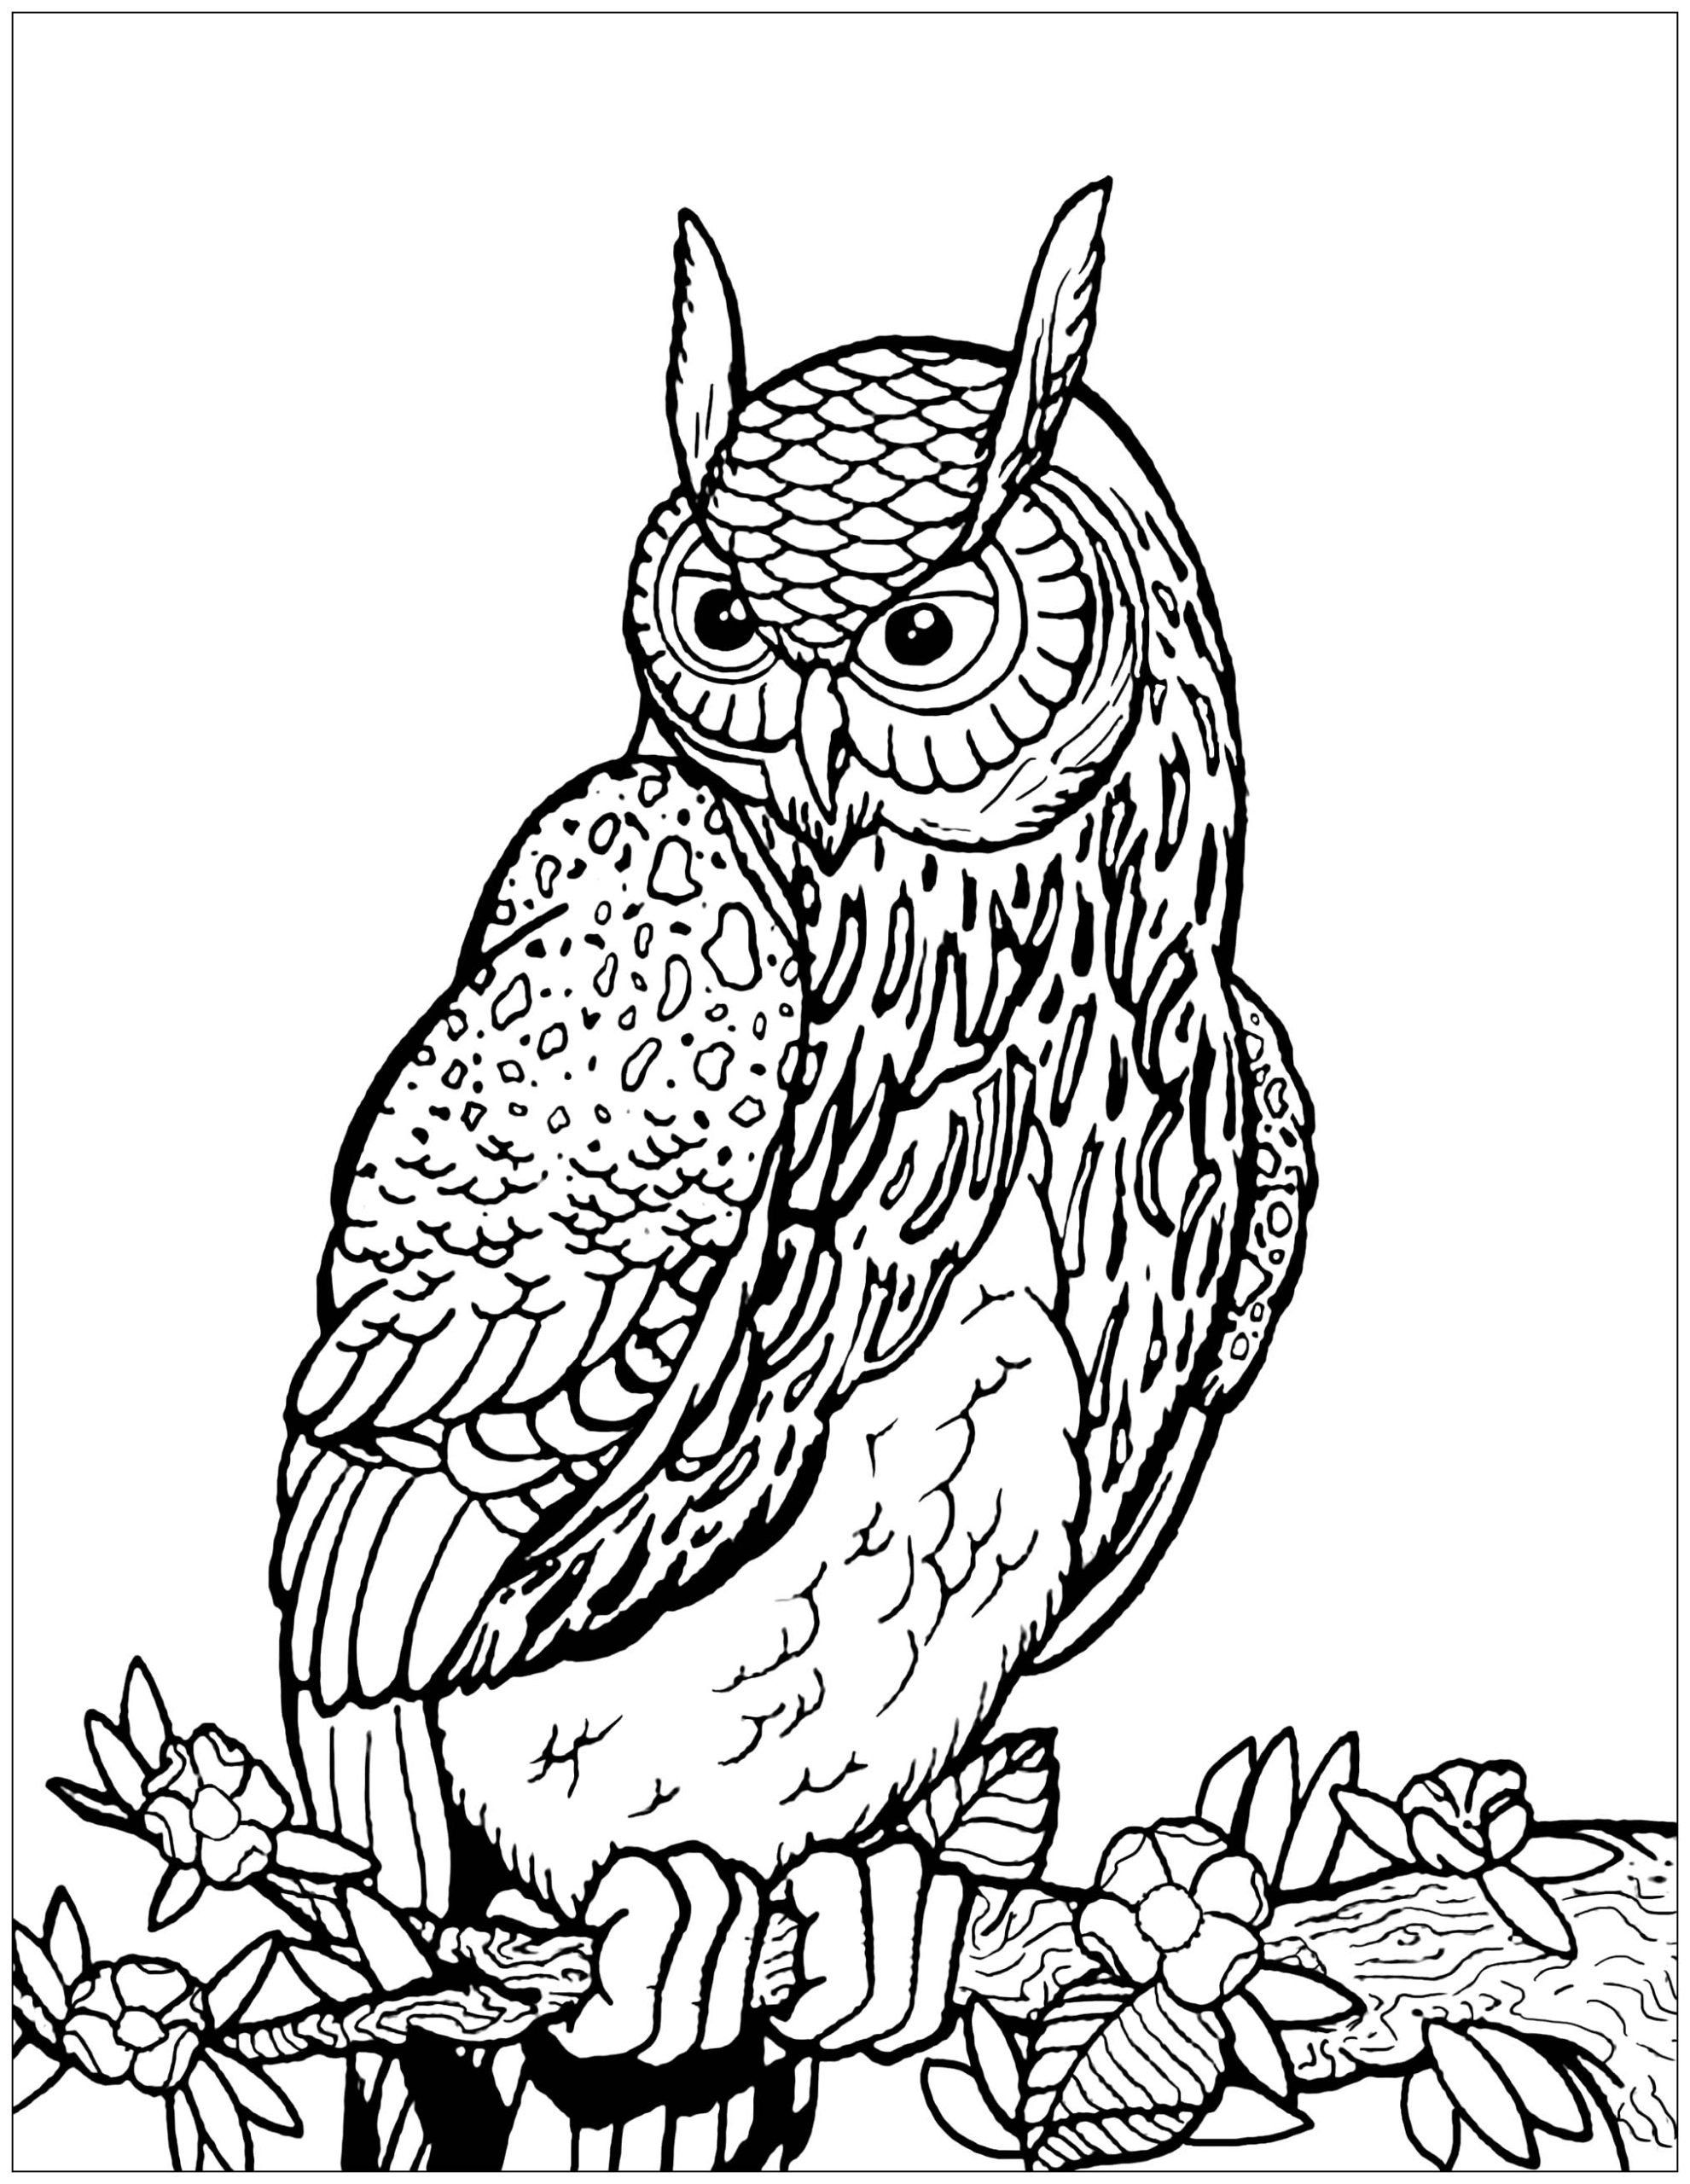 Coloring Picture Of Owls Coloring Pages Owls To For Free Kids Coloring Owl Ideas In 2020 Owl Coloring Pages Tree Coloring Page Coloring Pages